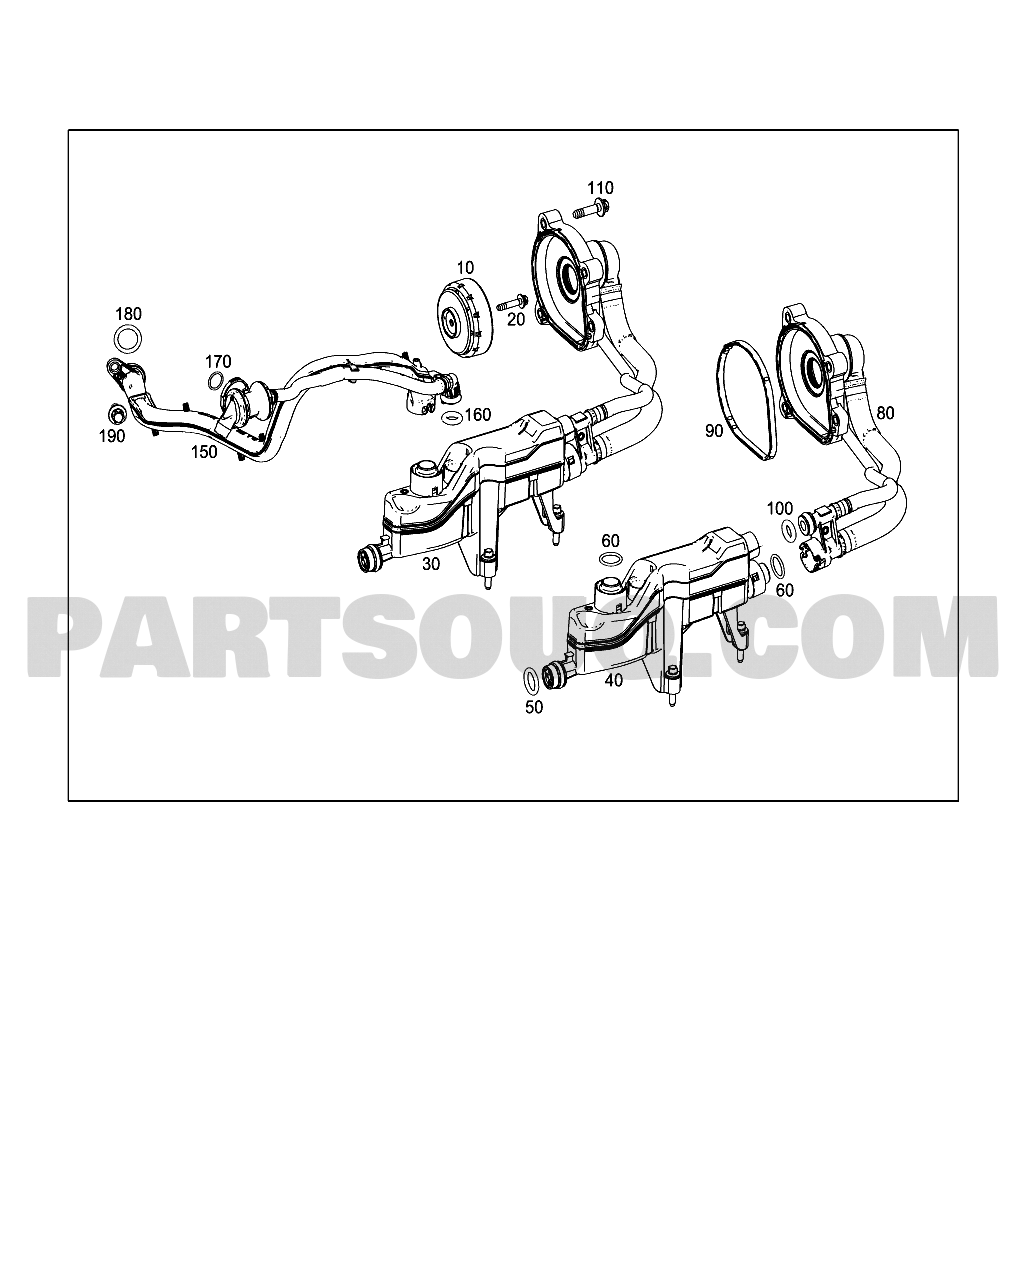 80 130000027_130418_gif_5f84d6000ff4a08f54c6c3319c0798770065ada5 dragon boost gauge wiring diagram wiring diagrams dragon gauge wiring diagram at fashall.co